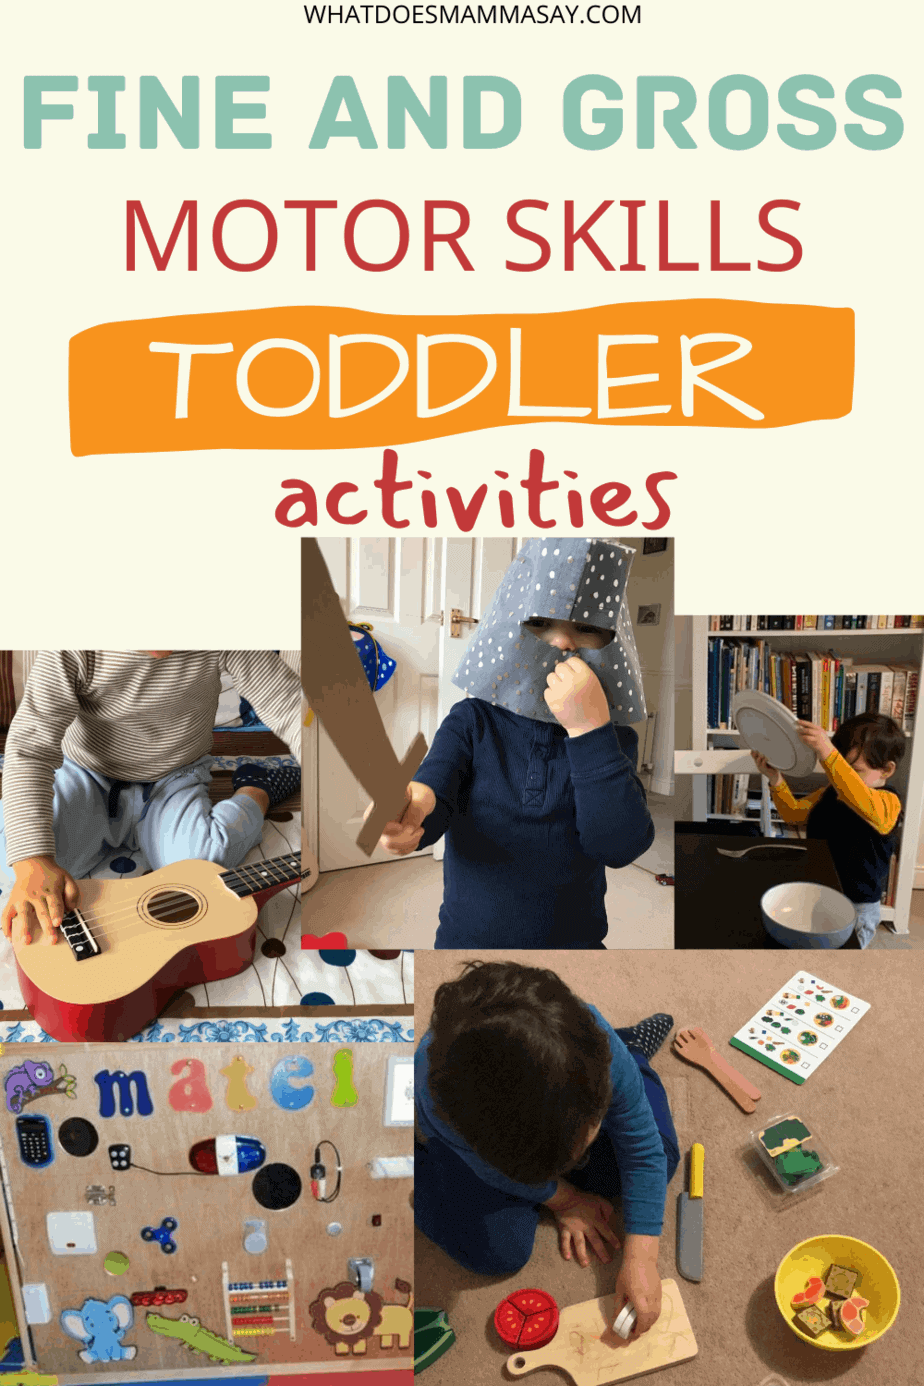 motor skills activities for toddlers